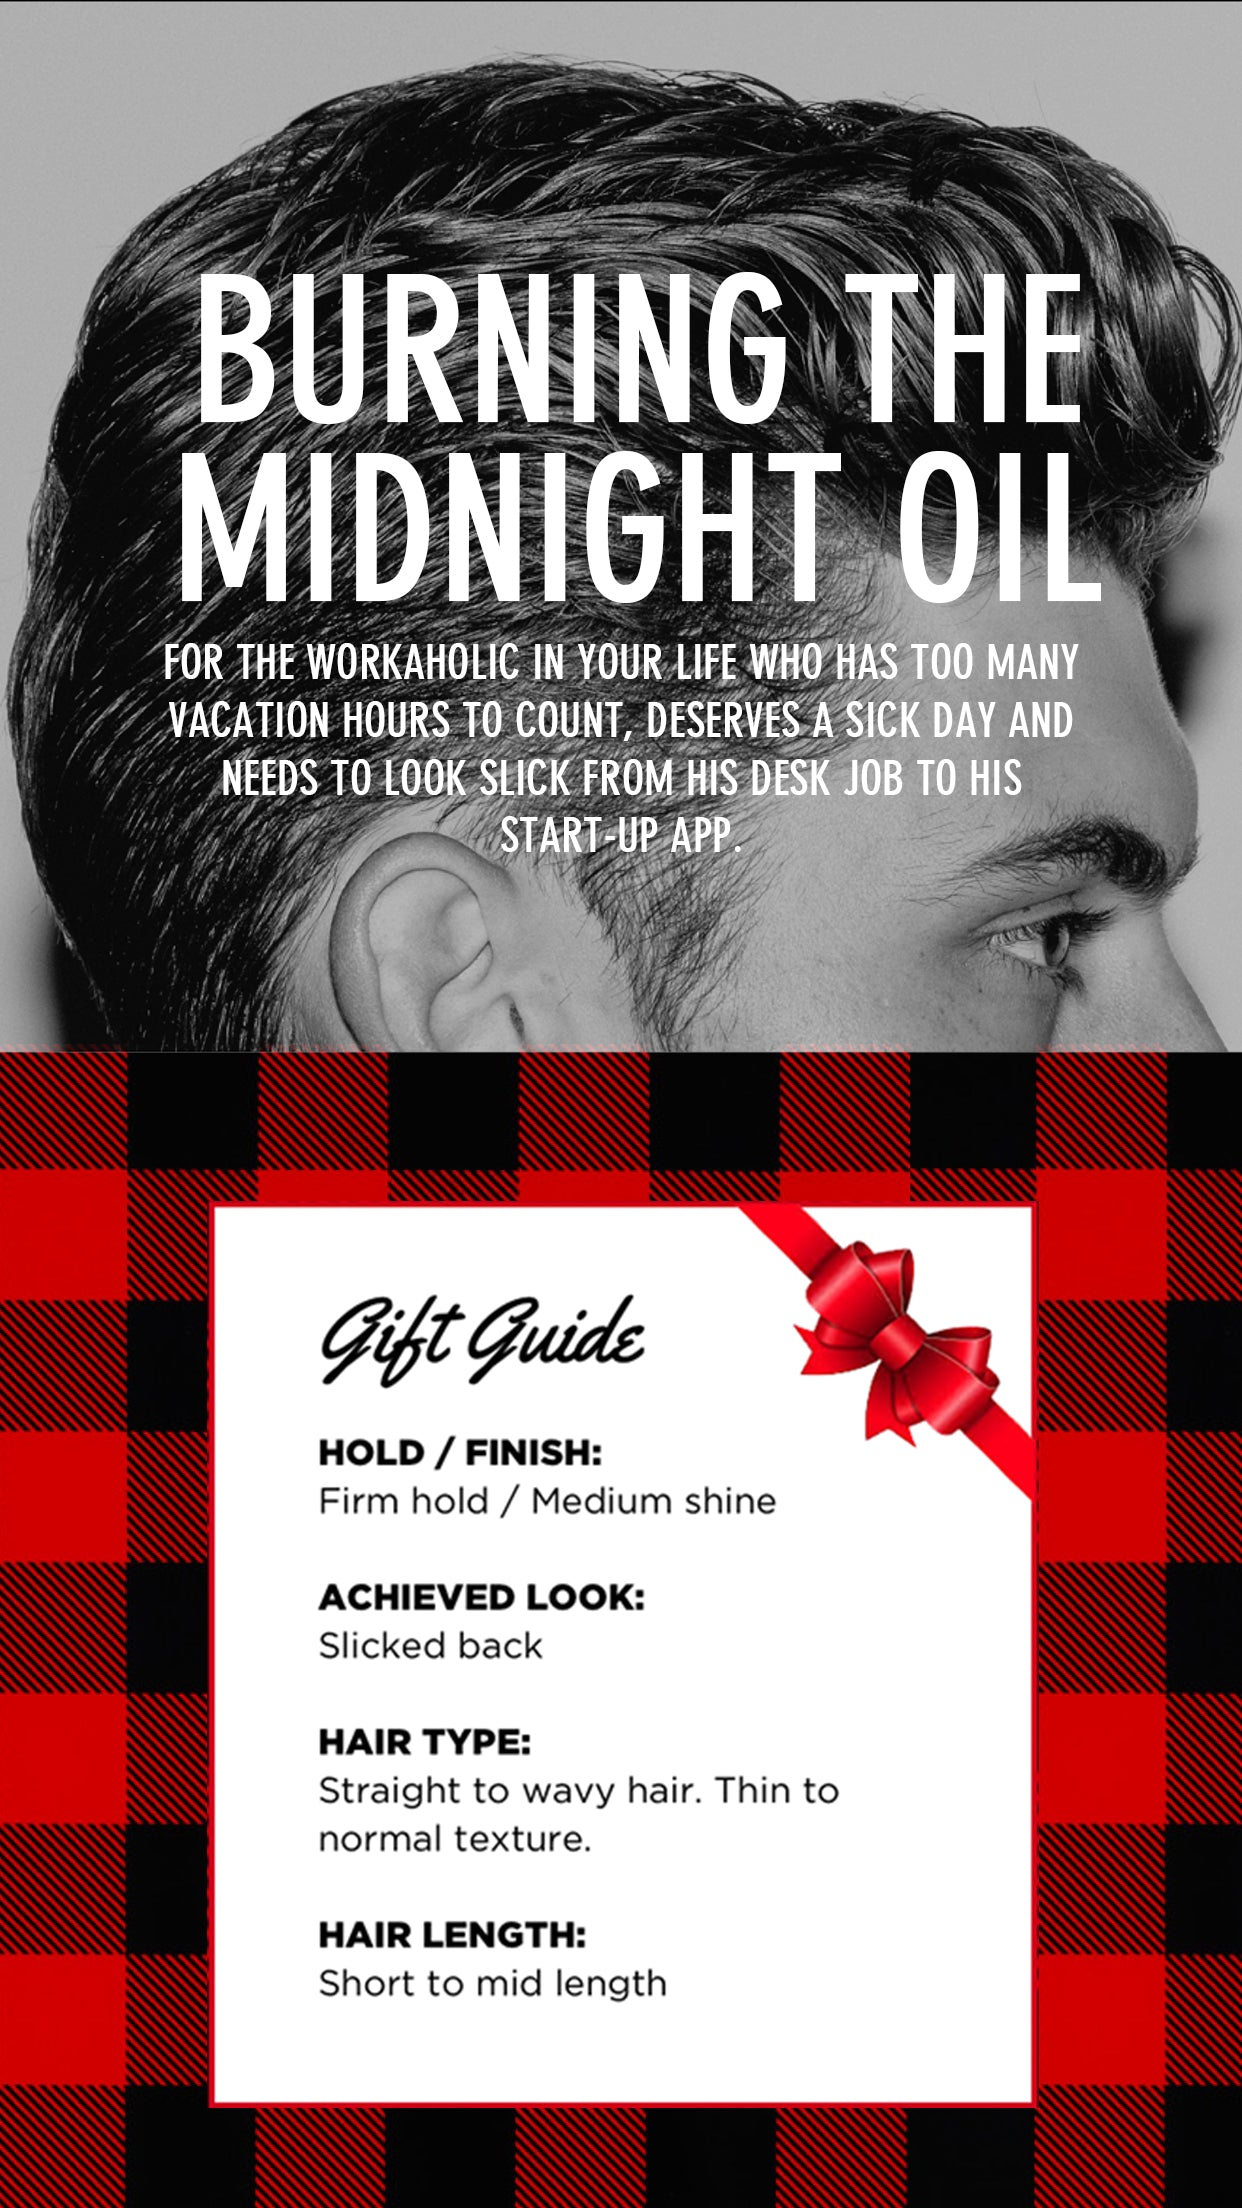 BURNING THE MIDNIGHT OIL - FOR THE WORKAHOLIC IN YOUR LIFE WHO HAS TOO MANY VACATION HOURS TO COUNT, DESERVES A SICK DAY AND NEEDS TO LOOK SLICK FROM HIS DESK JOB TO HIS START UP APP